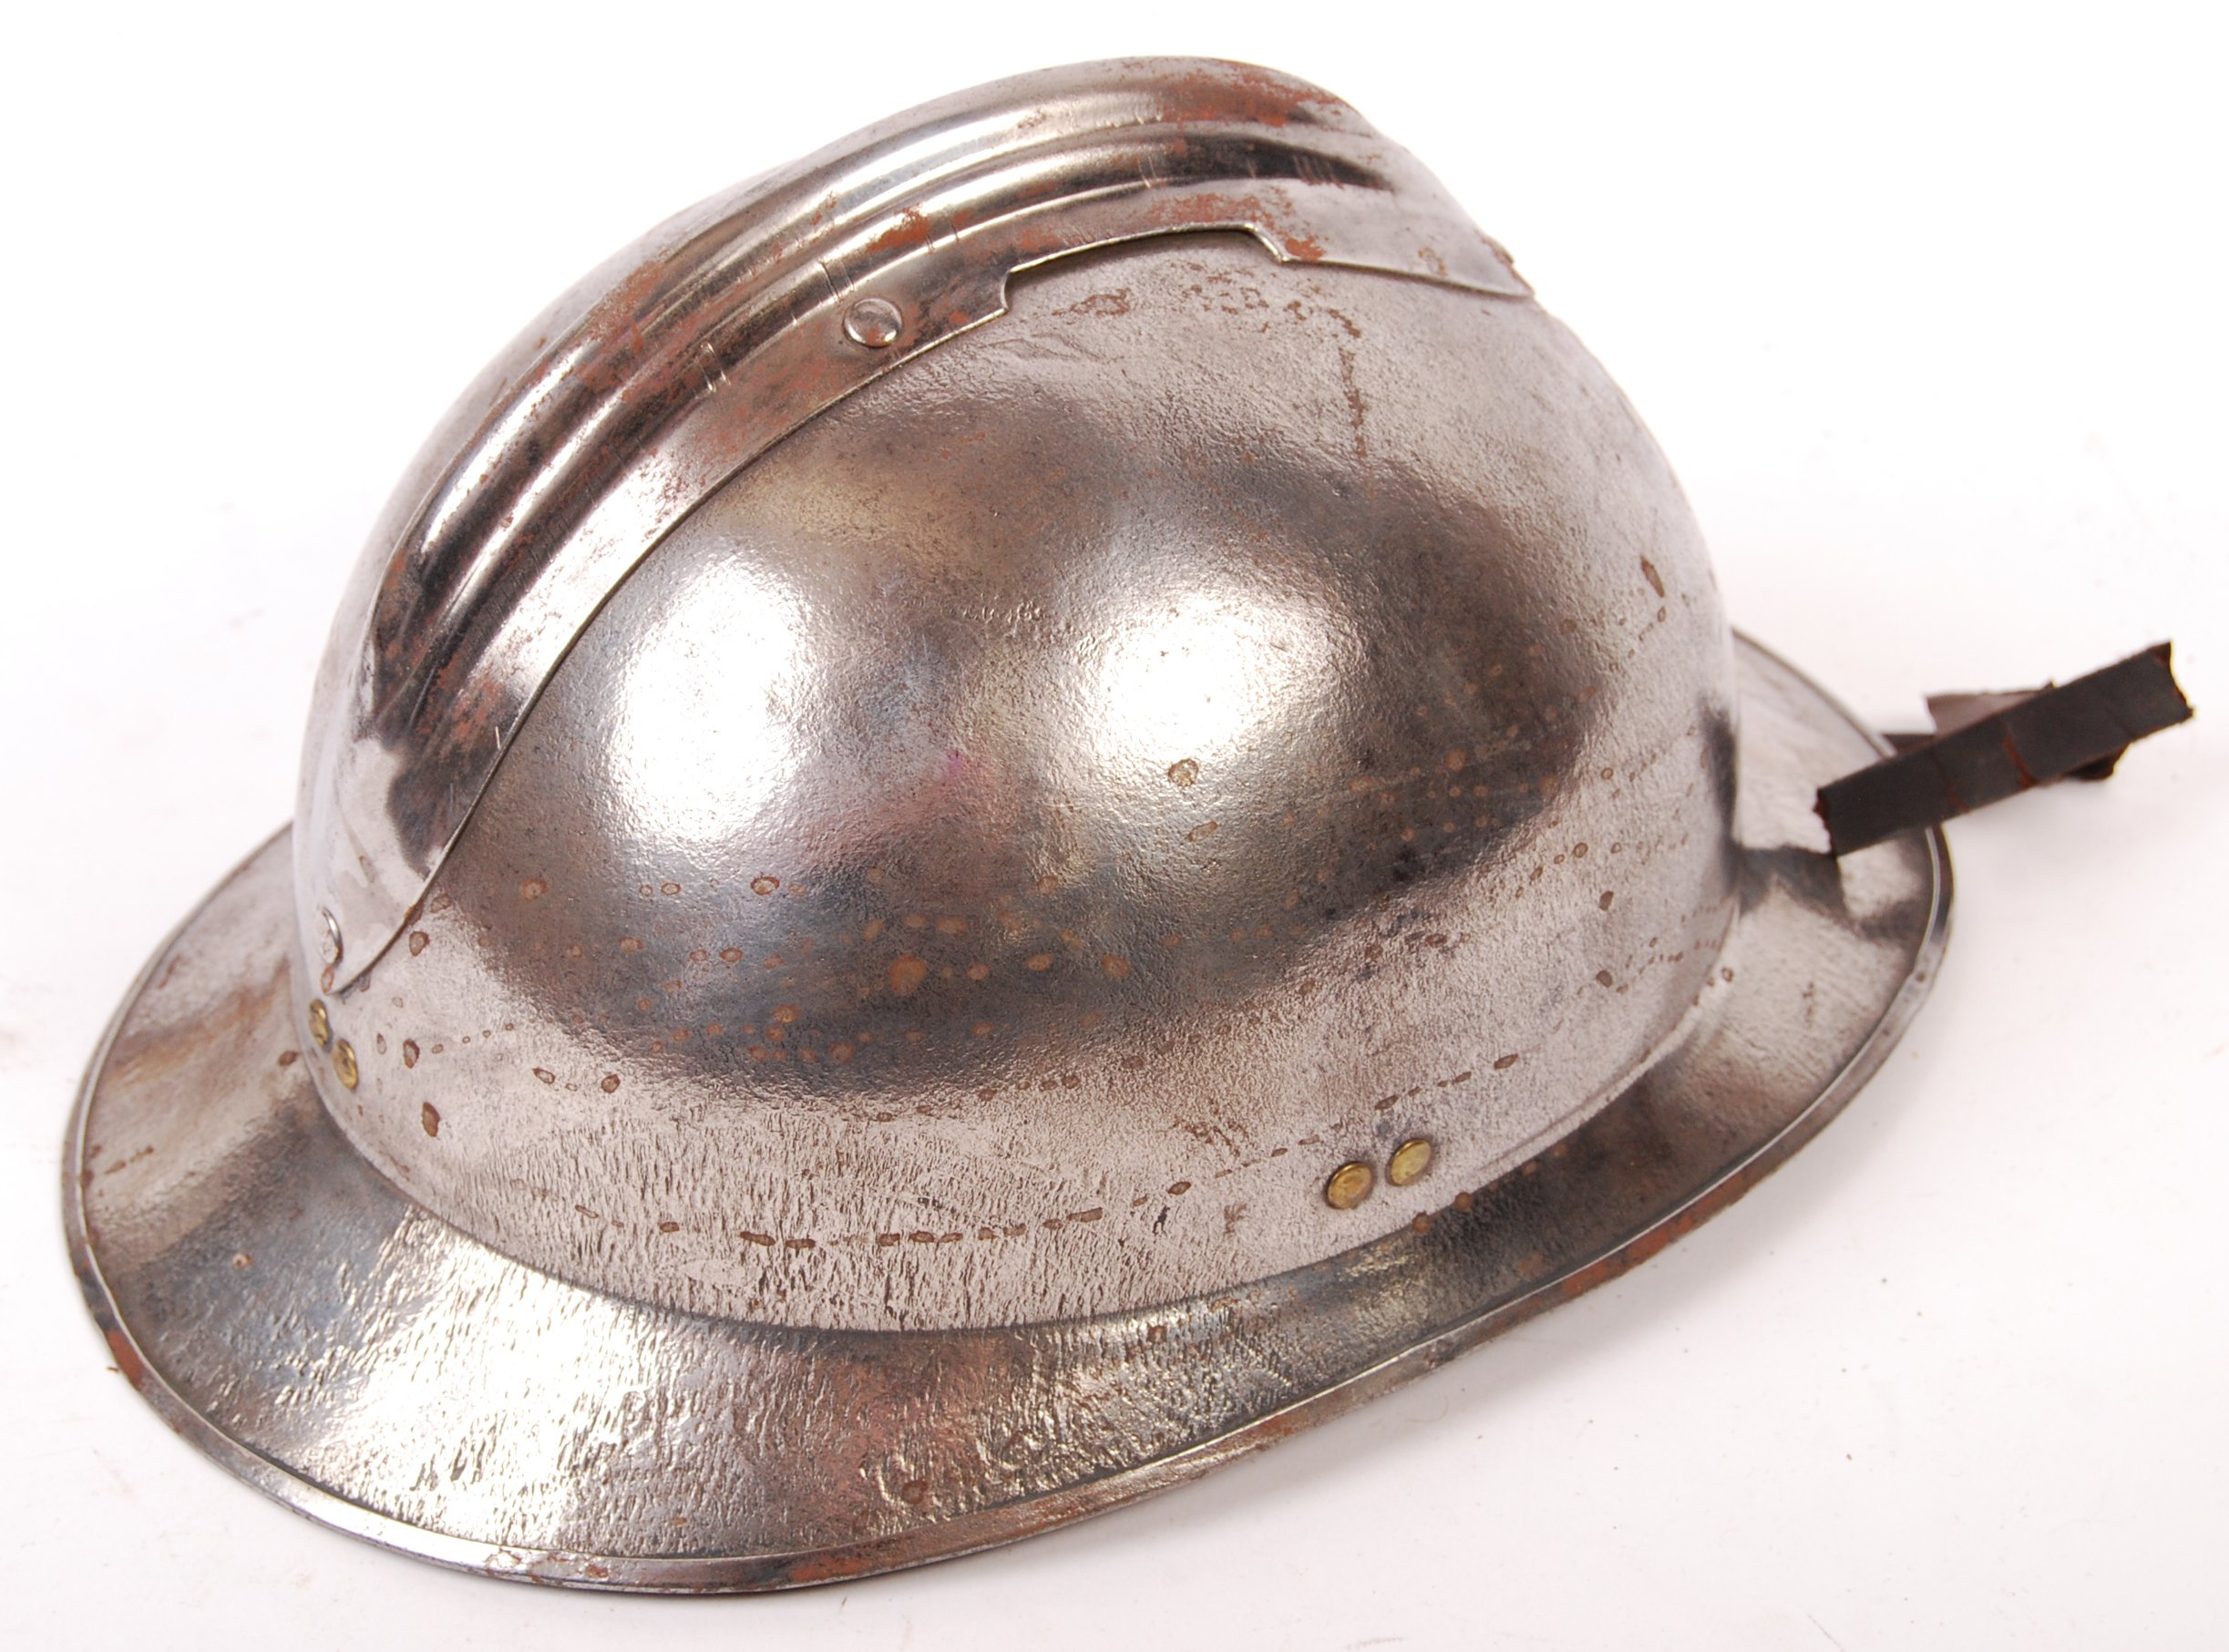 WWII SECOND WORLD WAR FRENCH M26 ADRIAN HELMET - Image 6 of 6